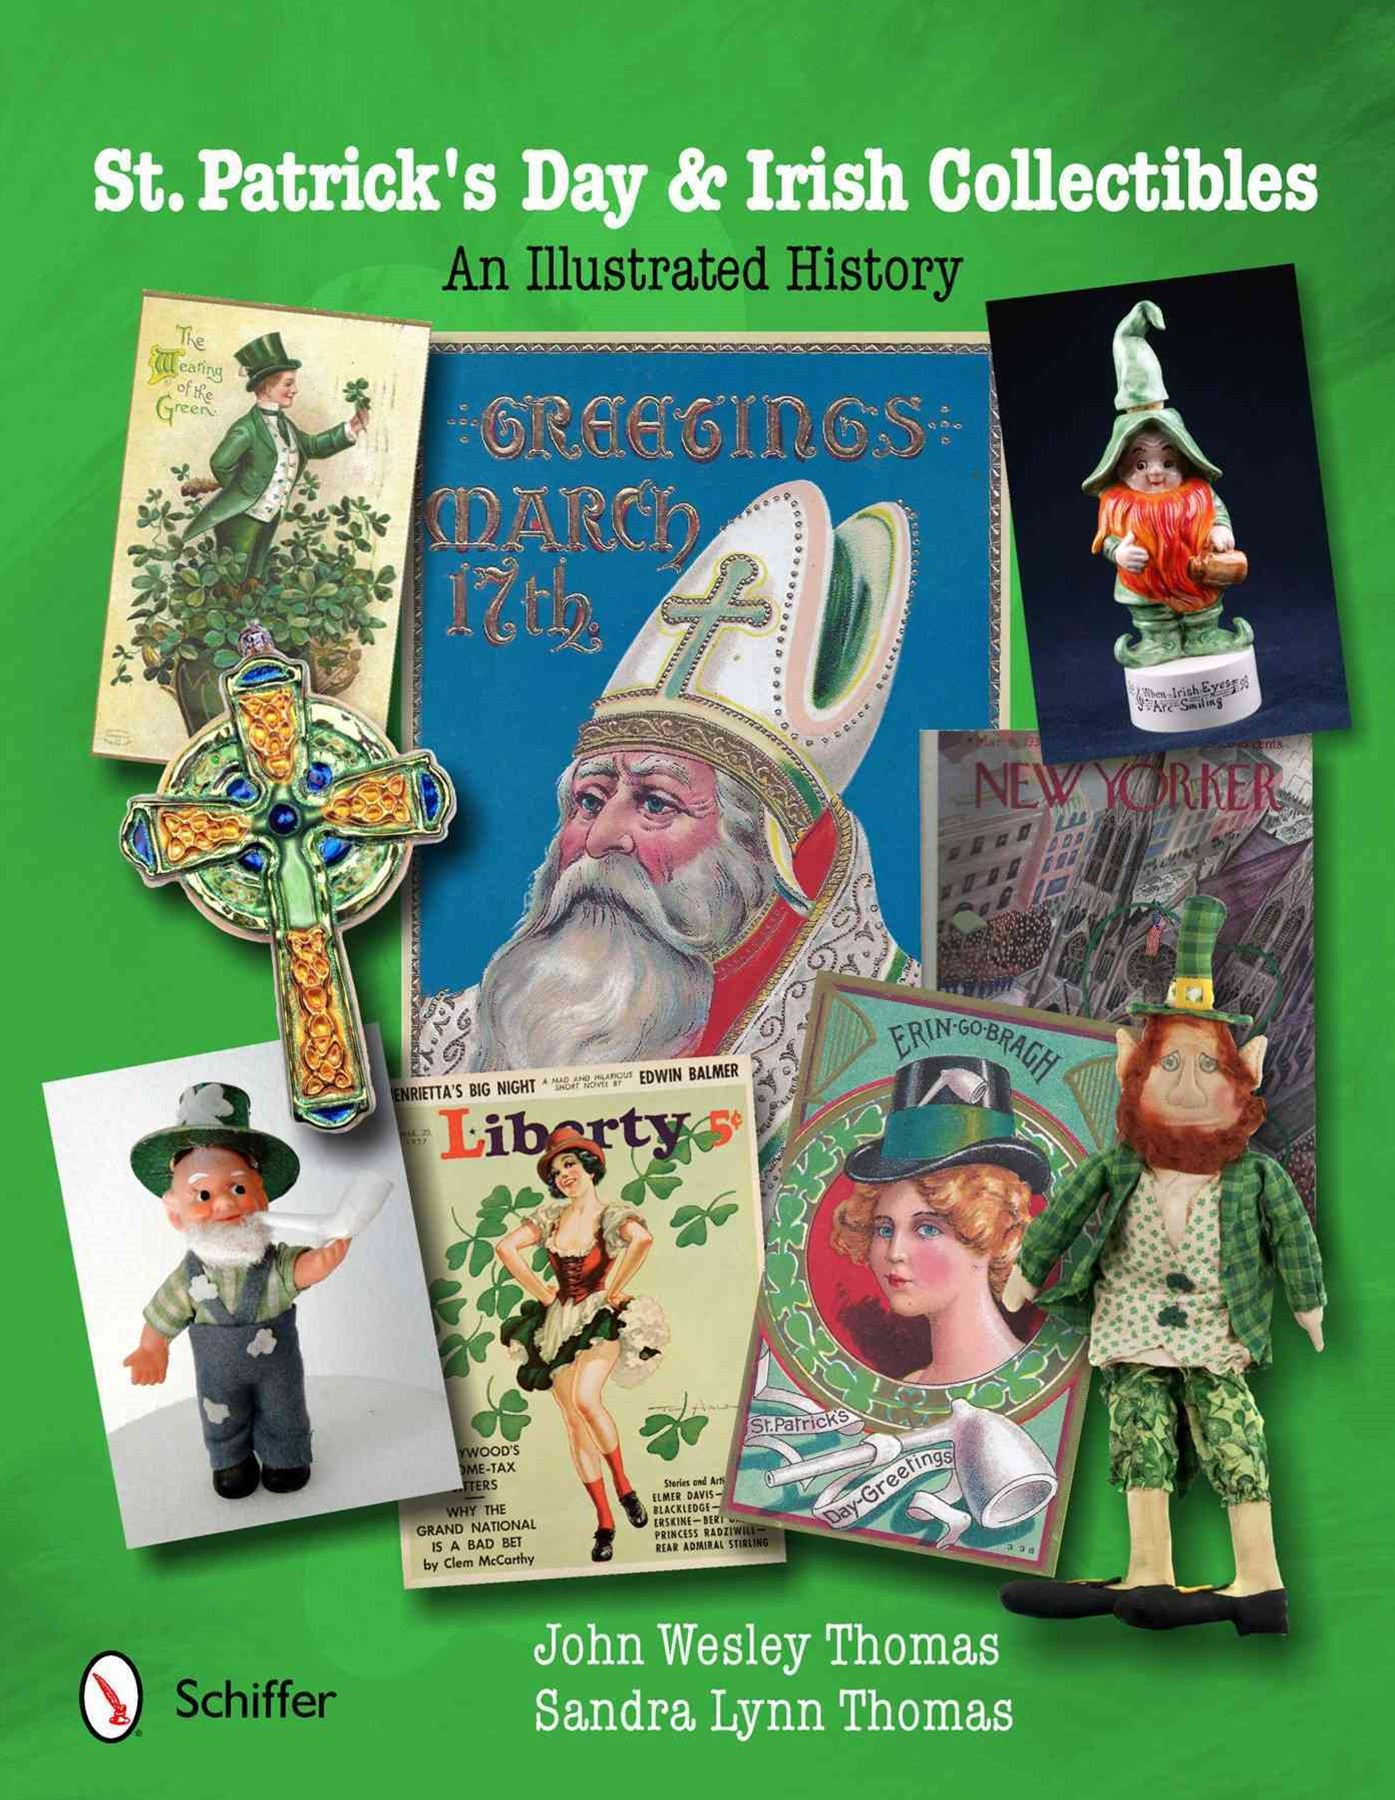 St. Patrick's Day and Irish Collectibles: An Illustrated History